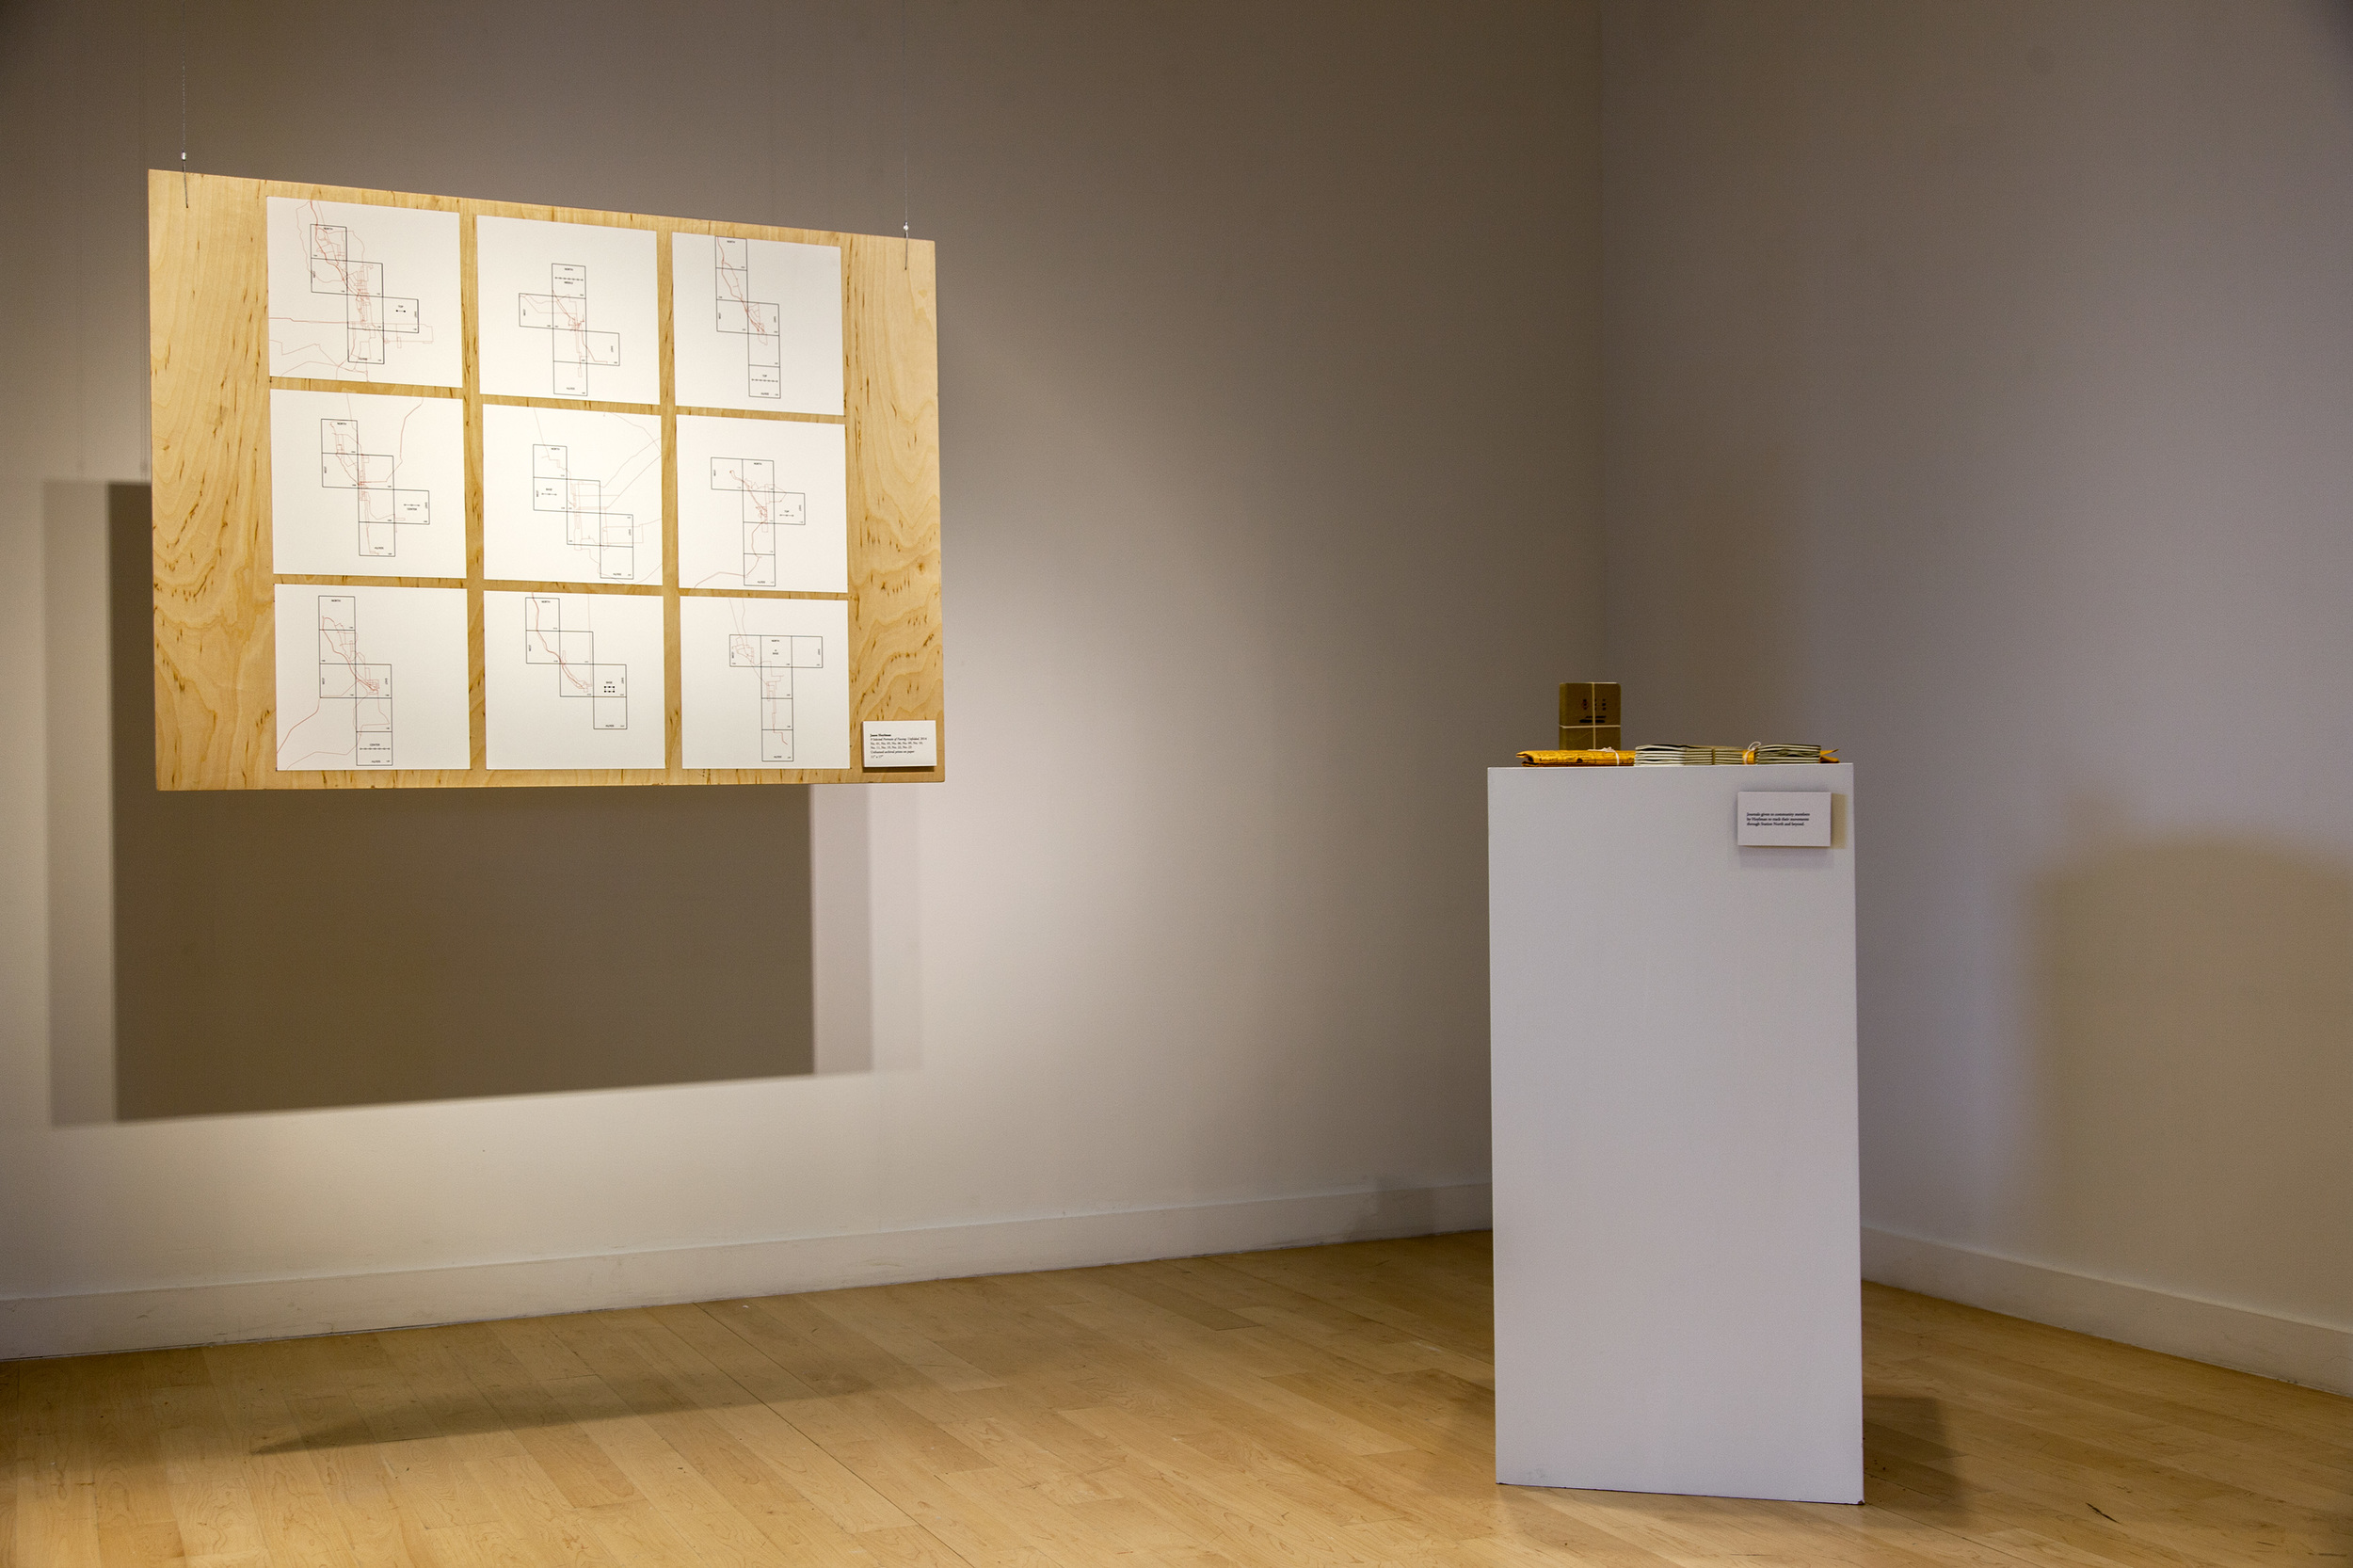 An installation shot of final artwork by Jason Hoylman. Maps representing the paths of his neighbors, and their journals on a pedestal.